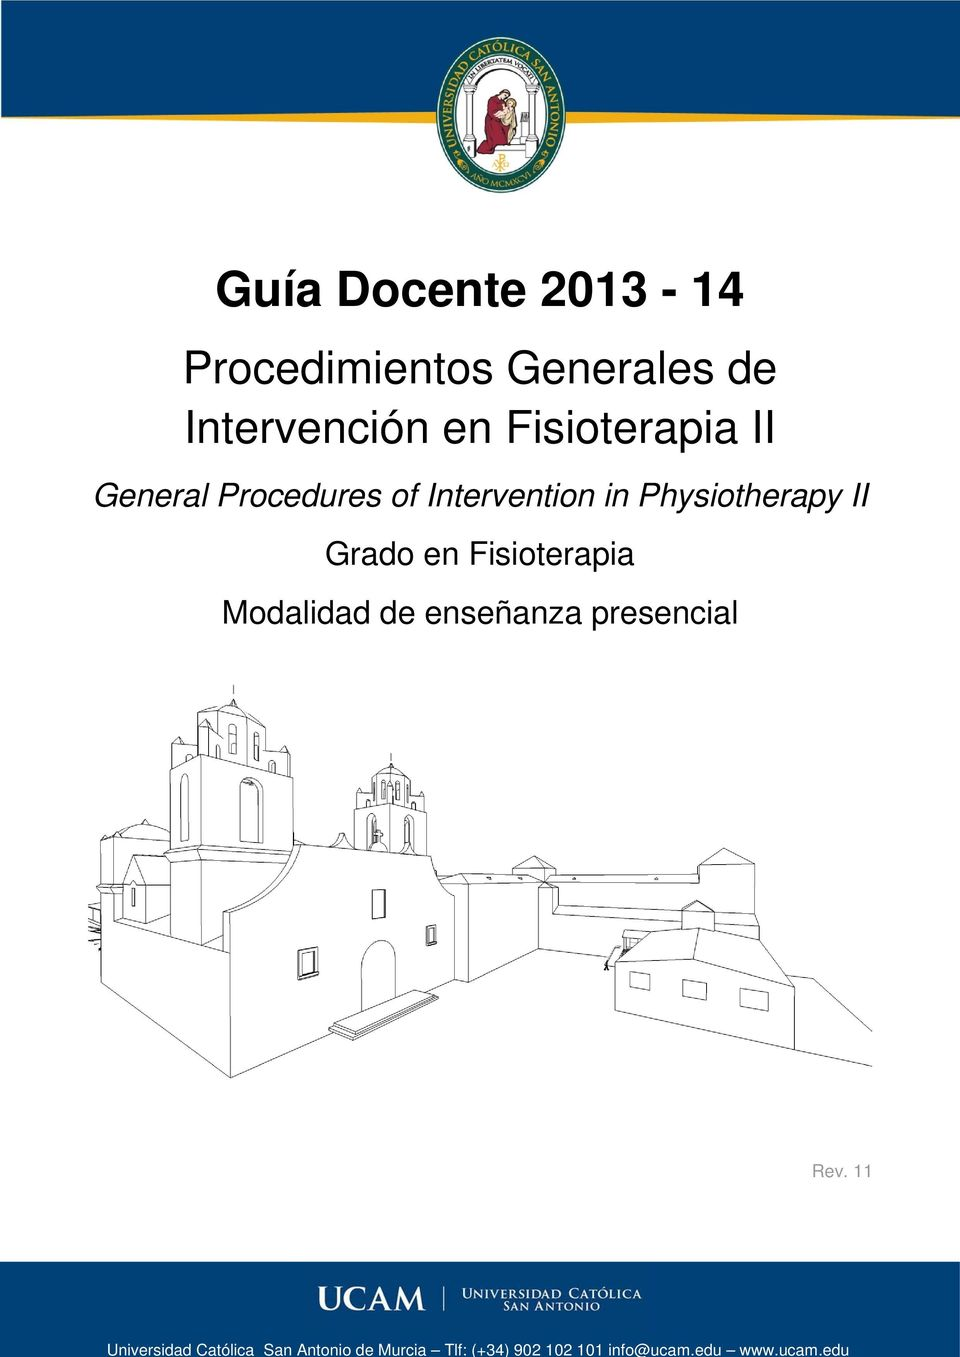 Fisioterapia II General Procedures of Intervention in Physiotherapy II Grado en